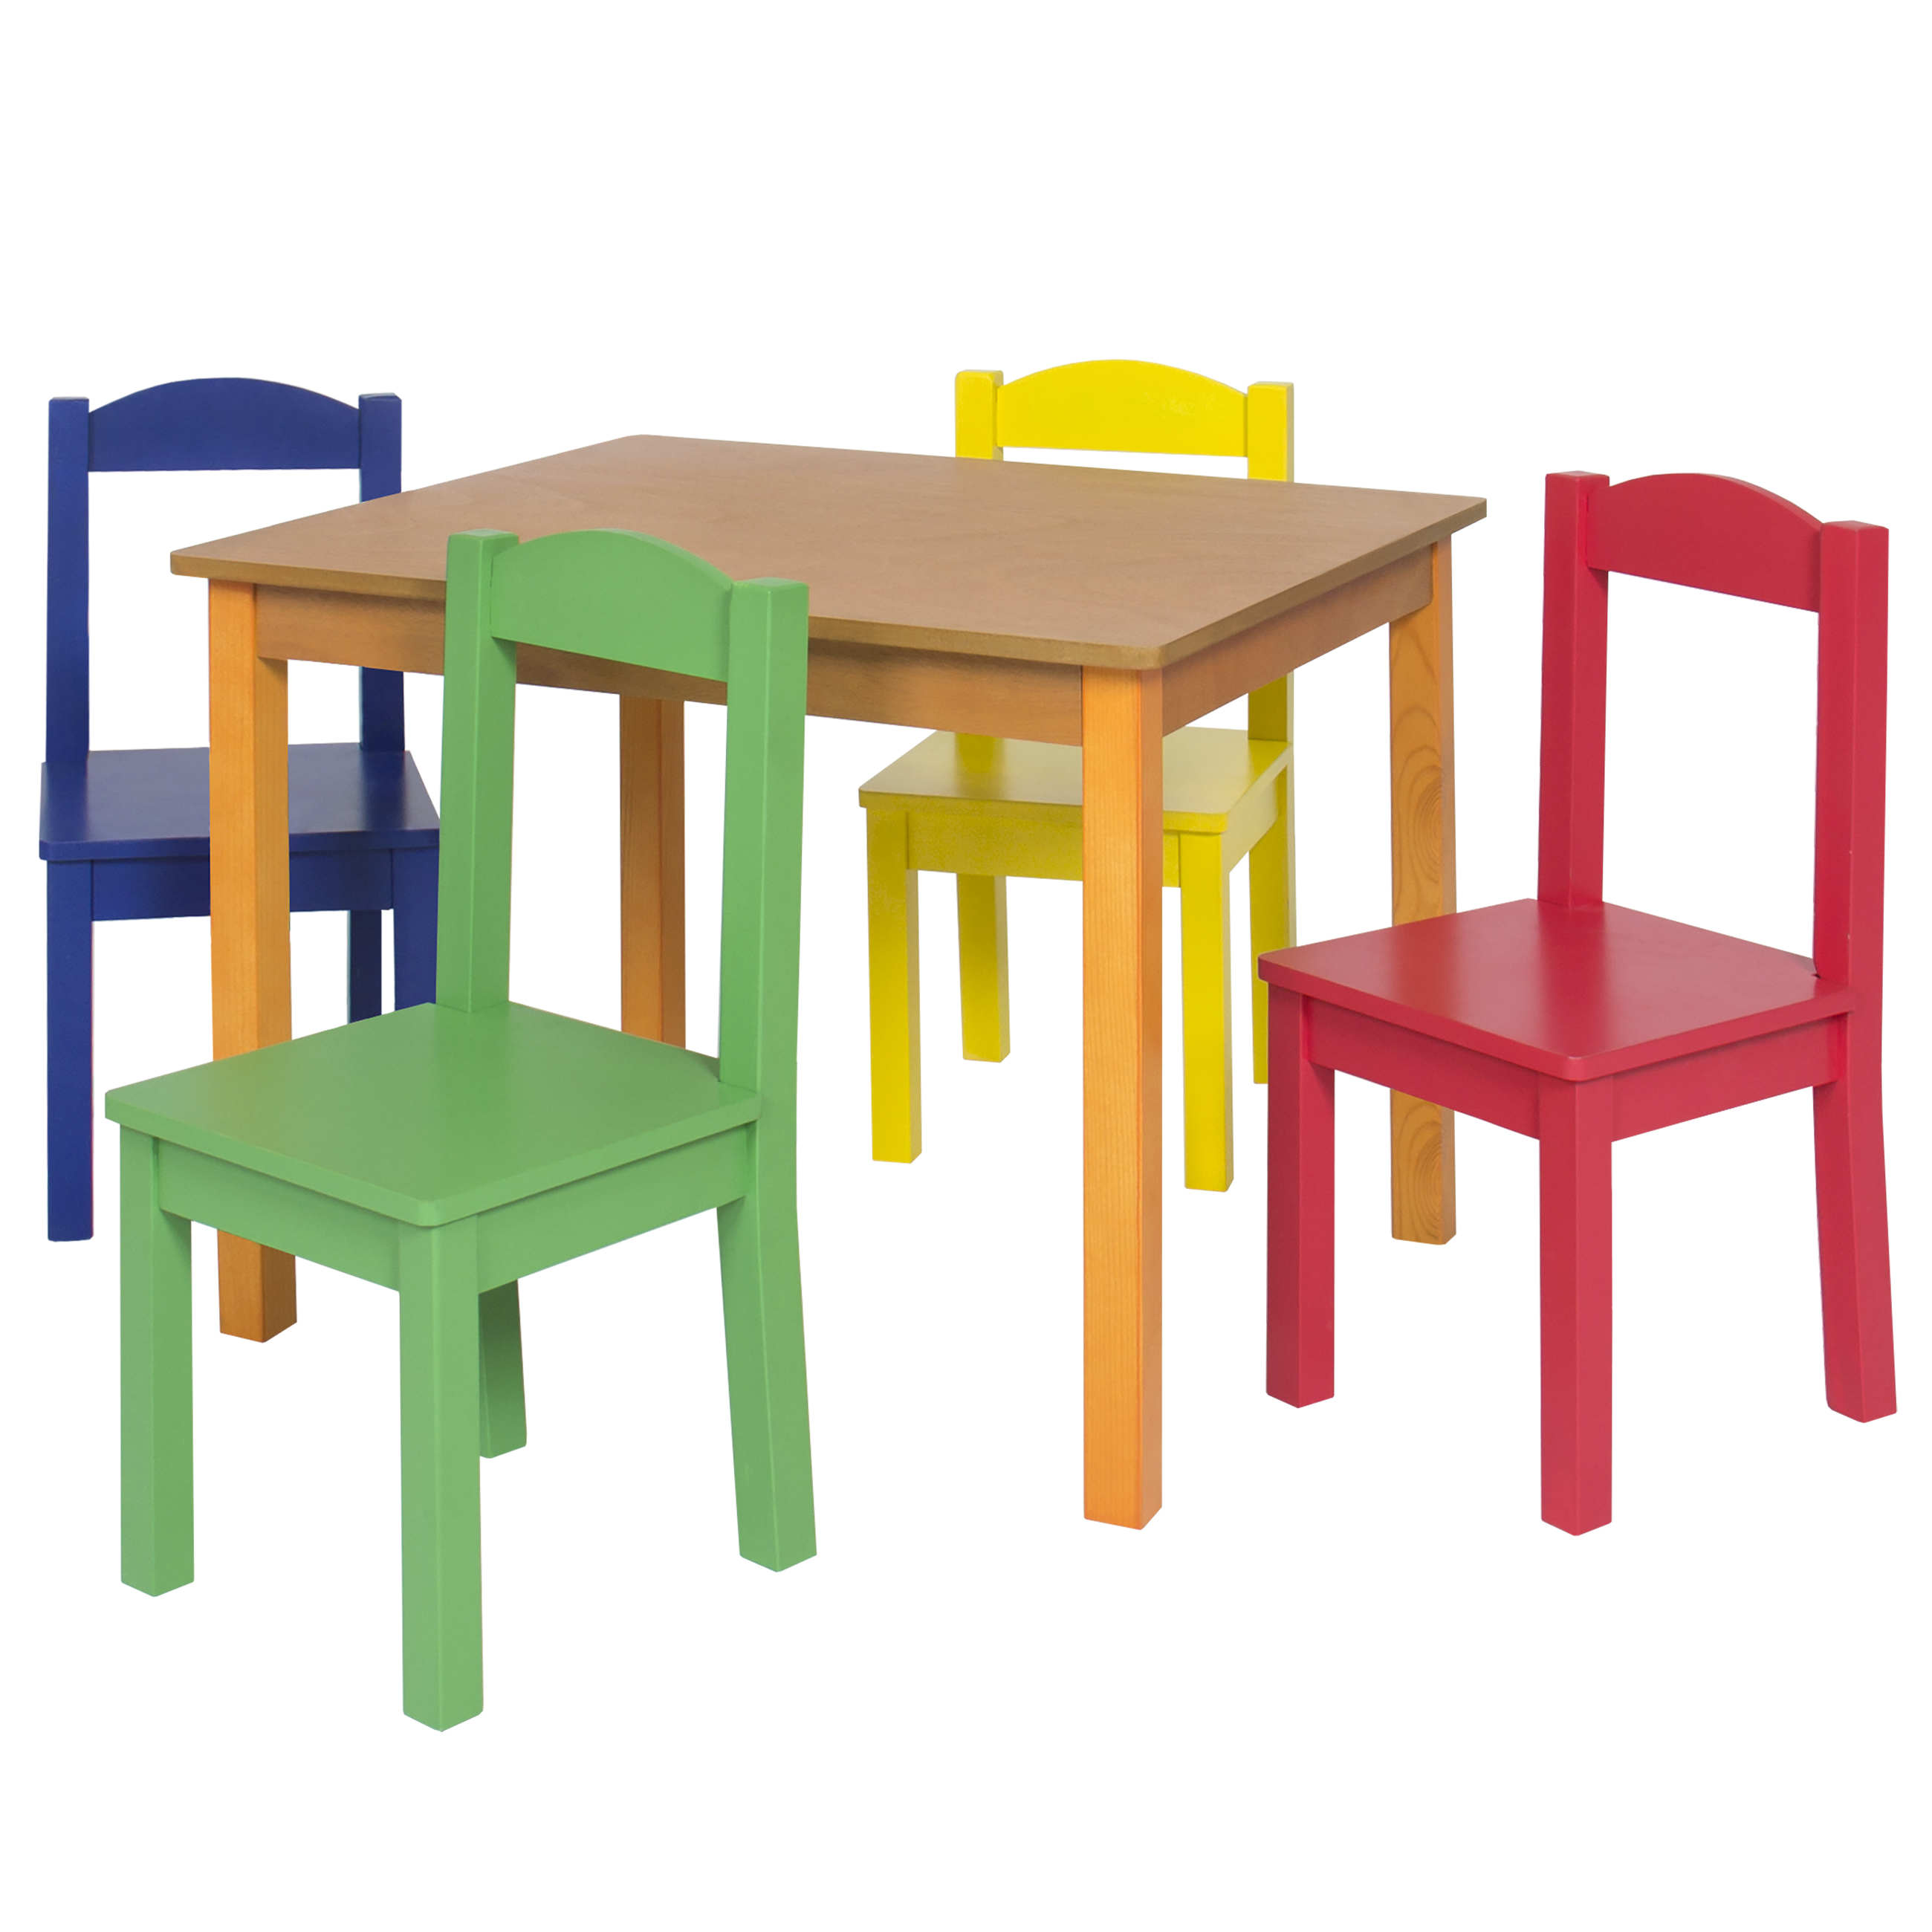 Kids Wood Table And Chairs Kids Wooden Table And 4 Chair Set Furniture Primary